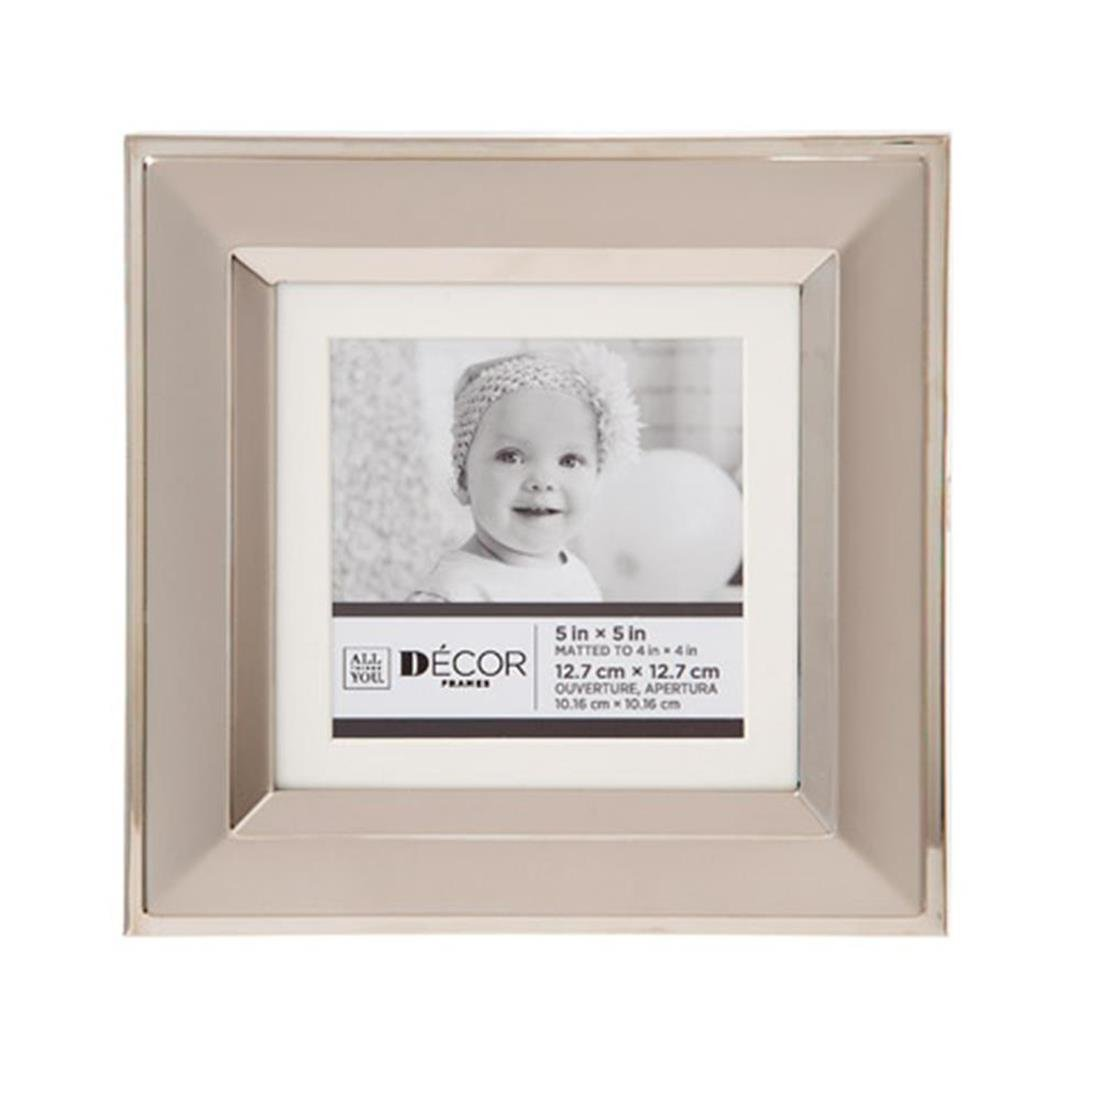 Darice All Things You™ 2-Opening Silver Picture Frame w/Matting: 7x9 to 4x6